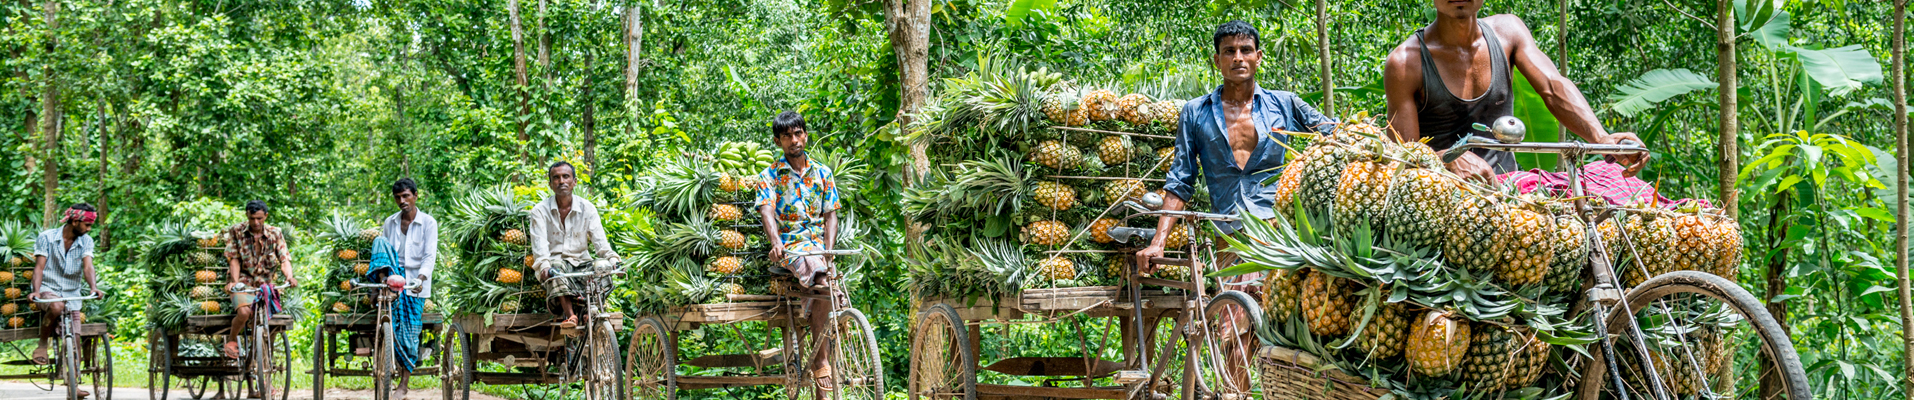 Pinapple Sellers in Dhaka, Bangladesh